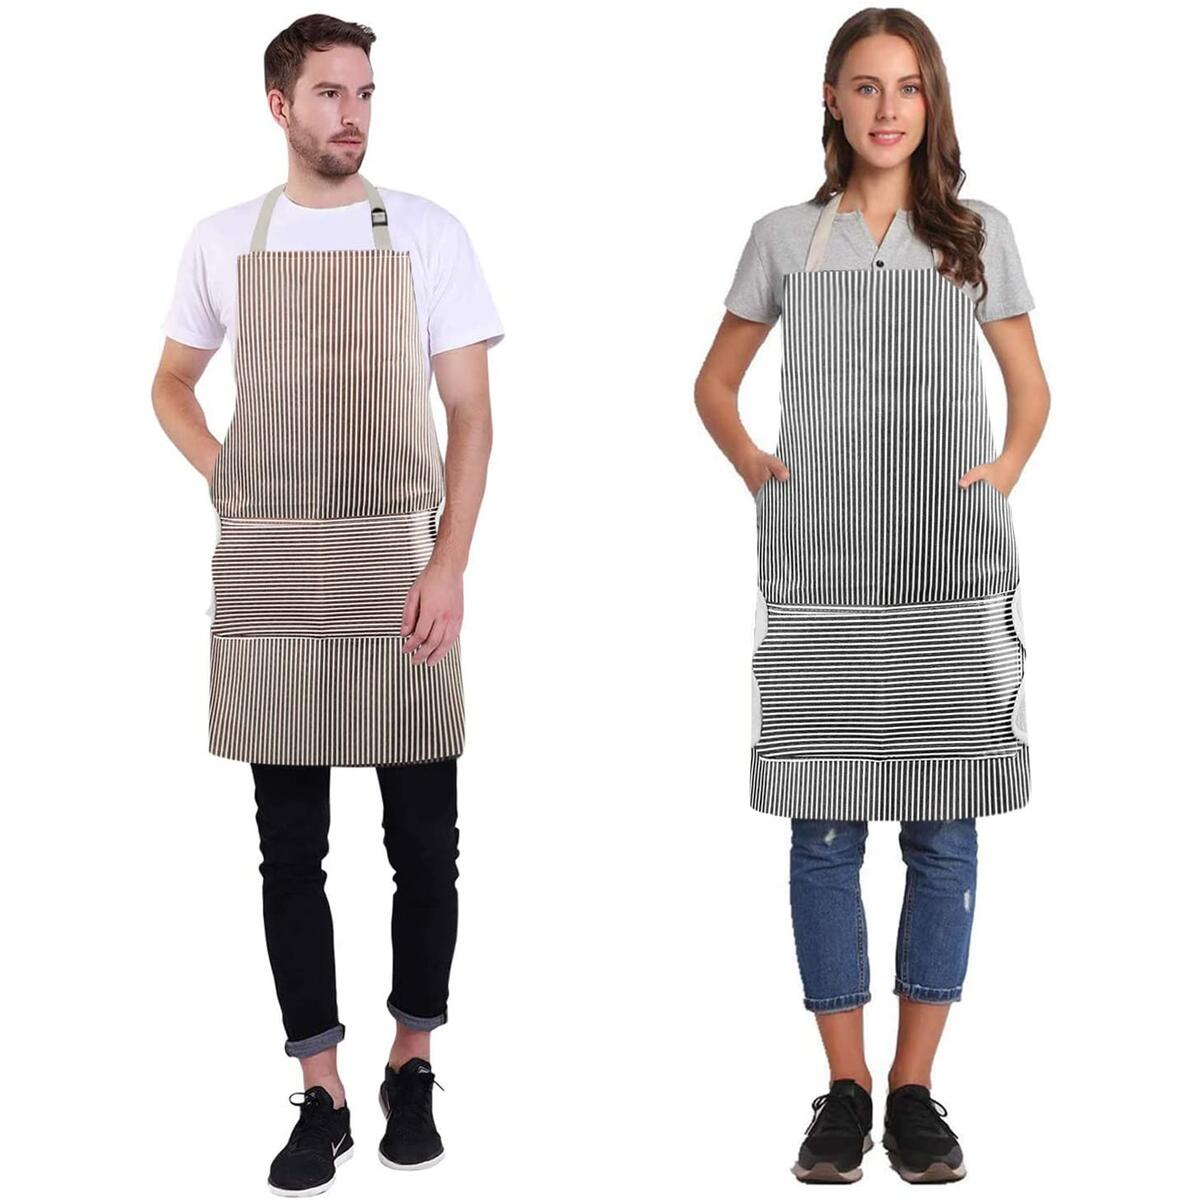 Sofore 2 Pack Adjustable Aprons, Waterproof & Oil-Proof Cooking Kitchen Aprons with 2 Pockets for Men Women, Coral Velvet Towels Stitched (Black &Coffee Stripe)